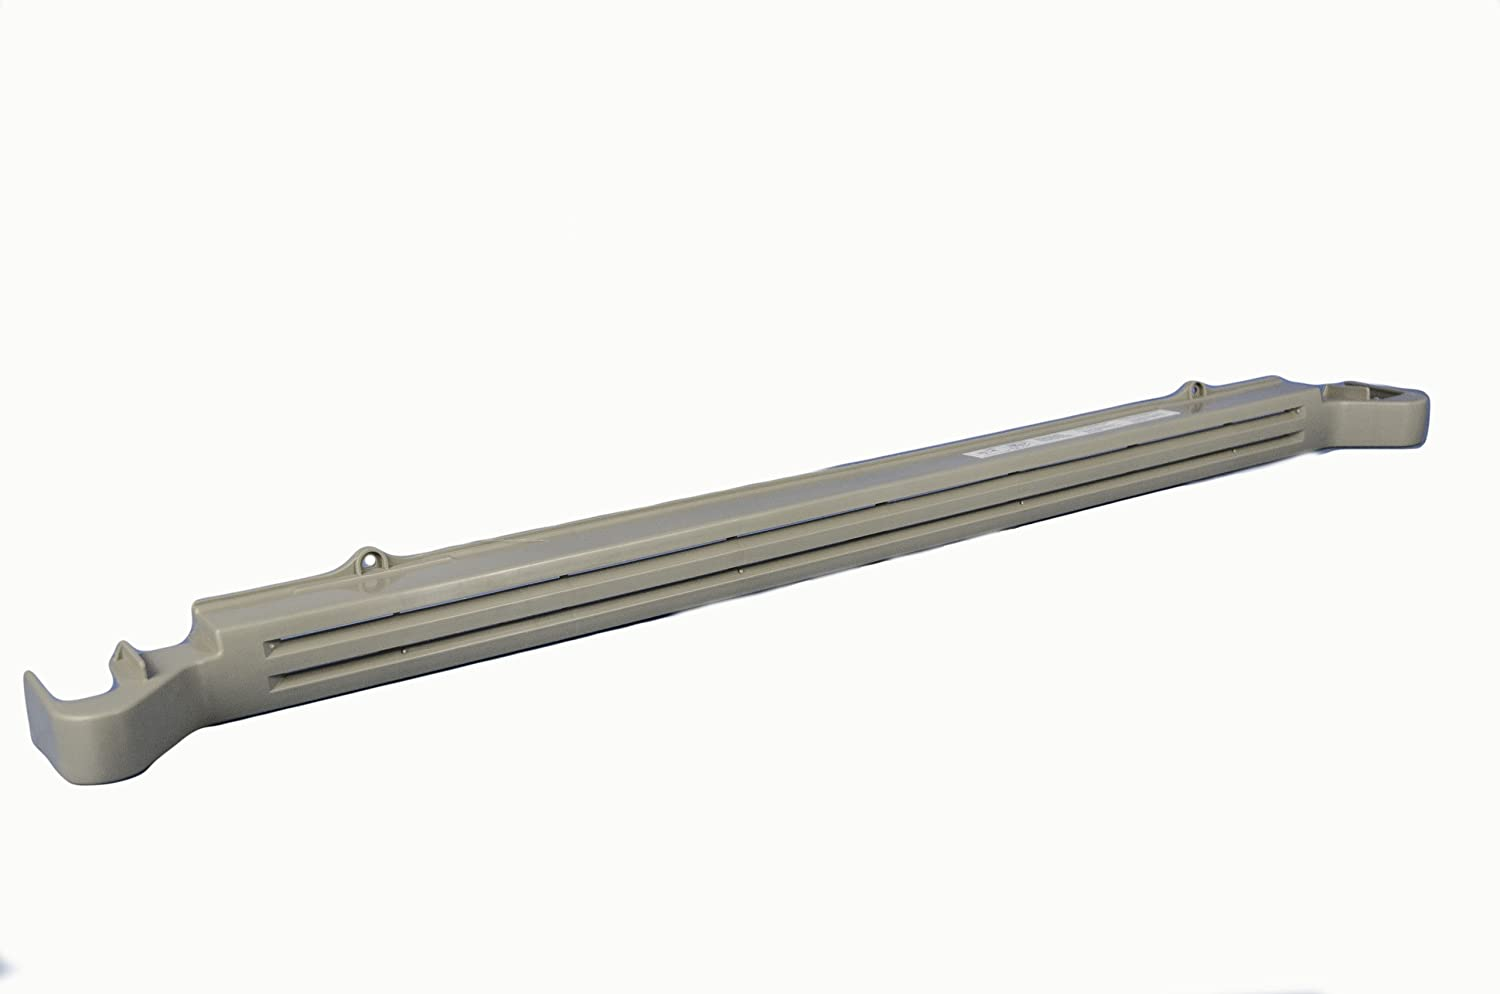 LG Electronics 3551JJ1066B Refrigerator Lower Cover Grill Assembly. Gray